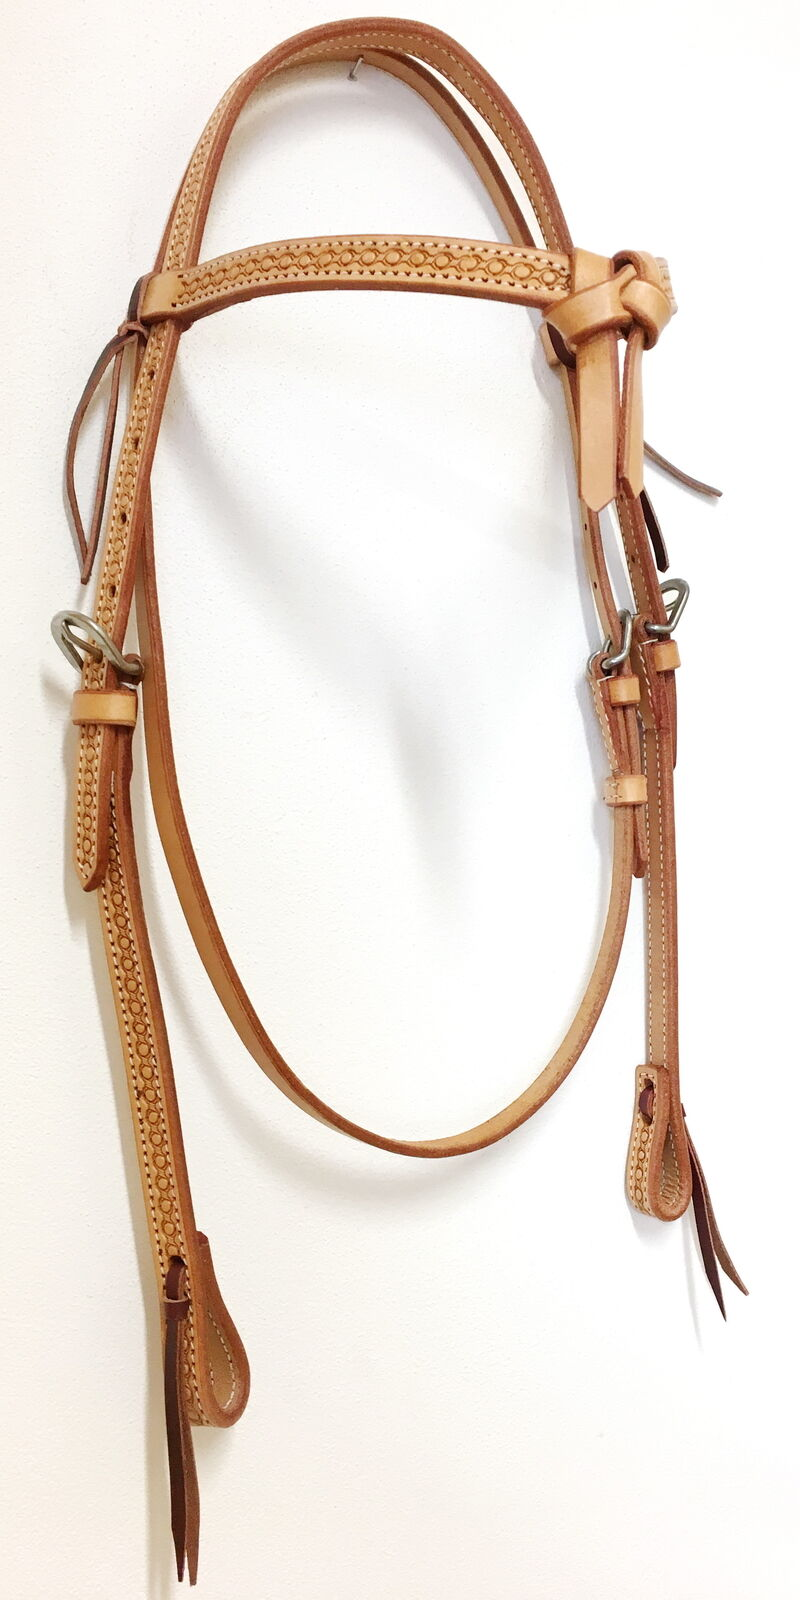 Westerntrense Futurity mit Tooling Westernzaum Headstall tolle Punzierung